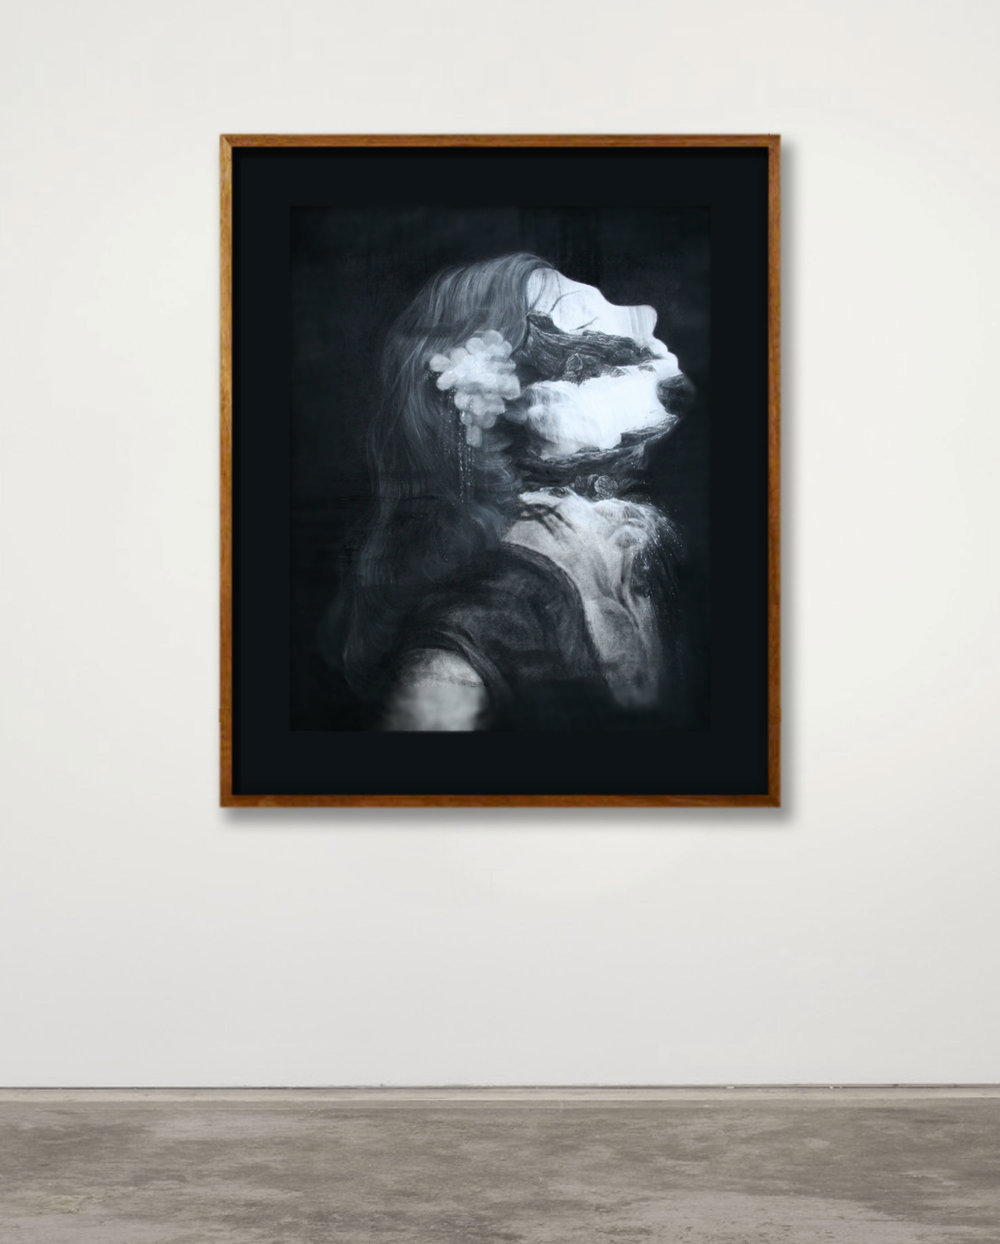 LAY OF THE LAND (INSTALLATION VIEW)